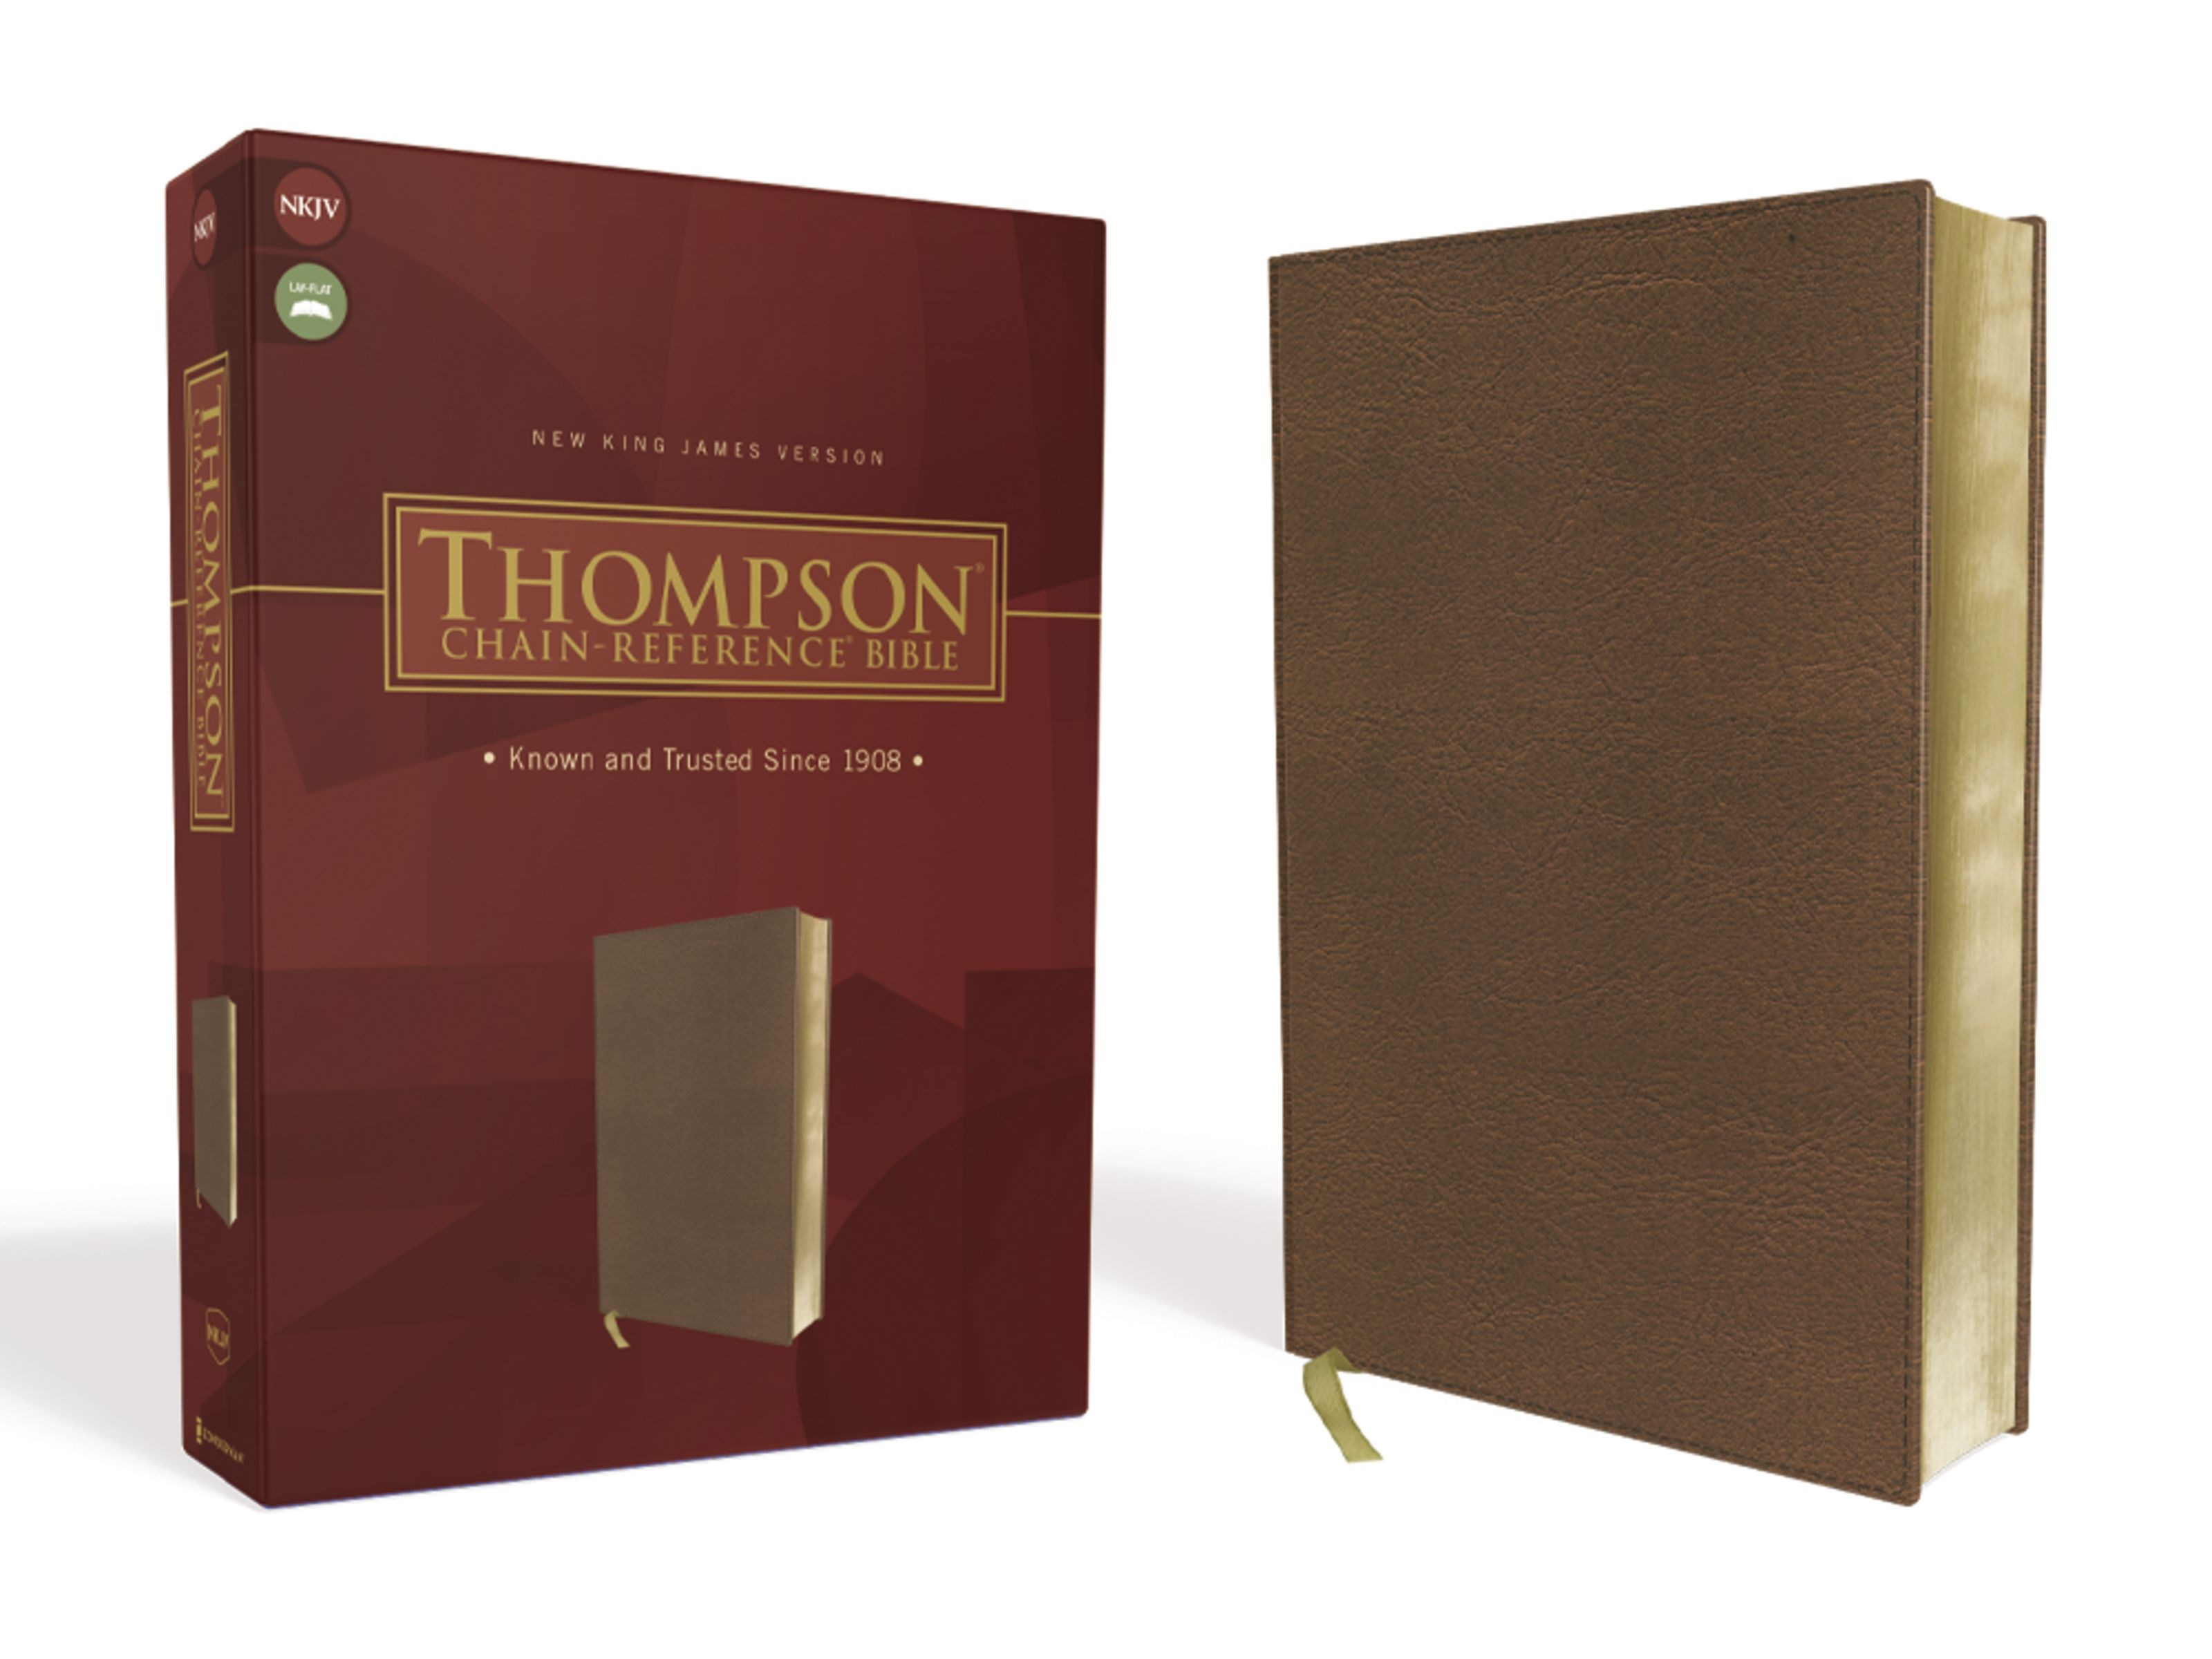 NKJV Thompson Chain-Reference Bible-Brown Leathersoft